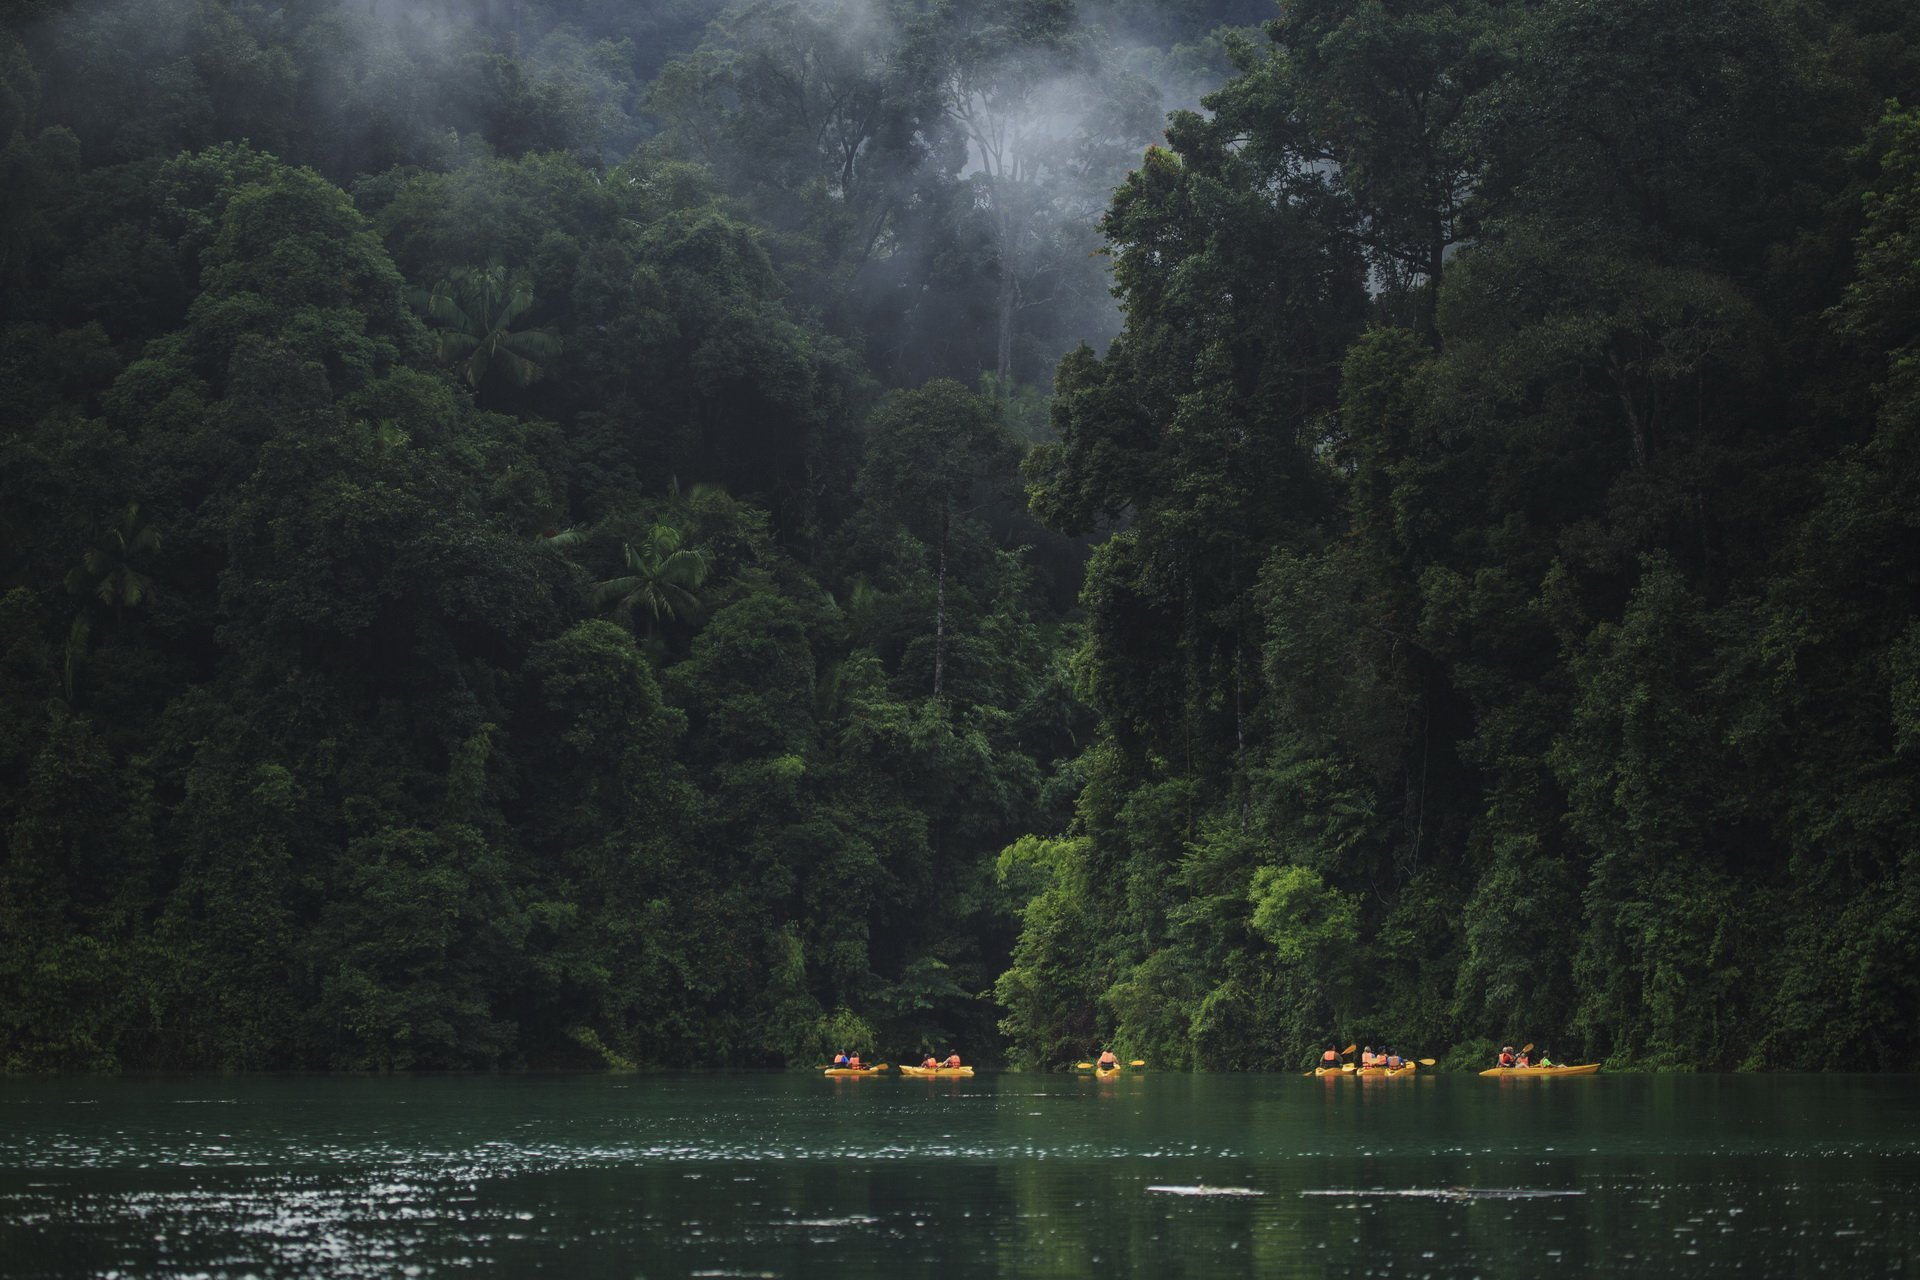 The morning vibe at Khao sok national park where you can paddle out to seek for some wildlife animals